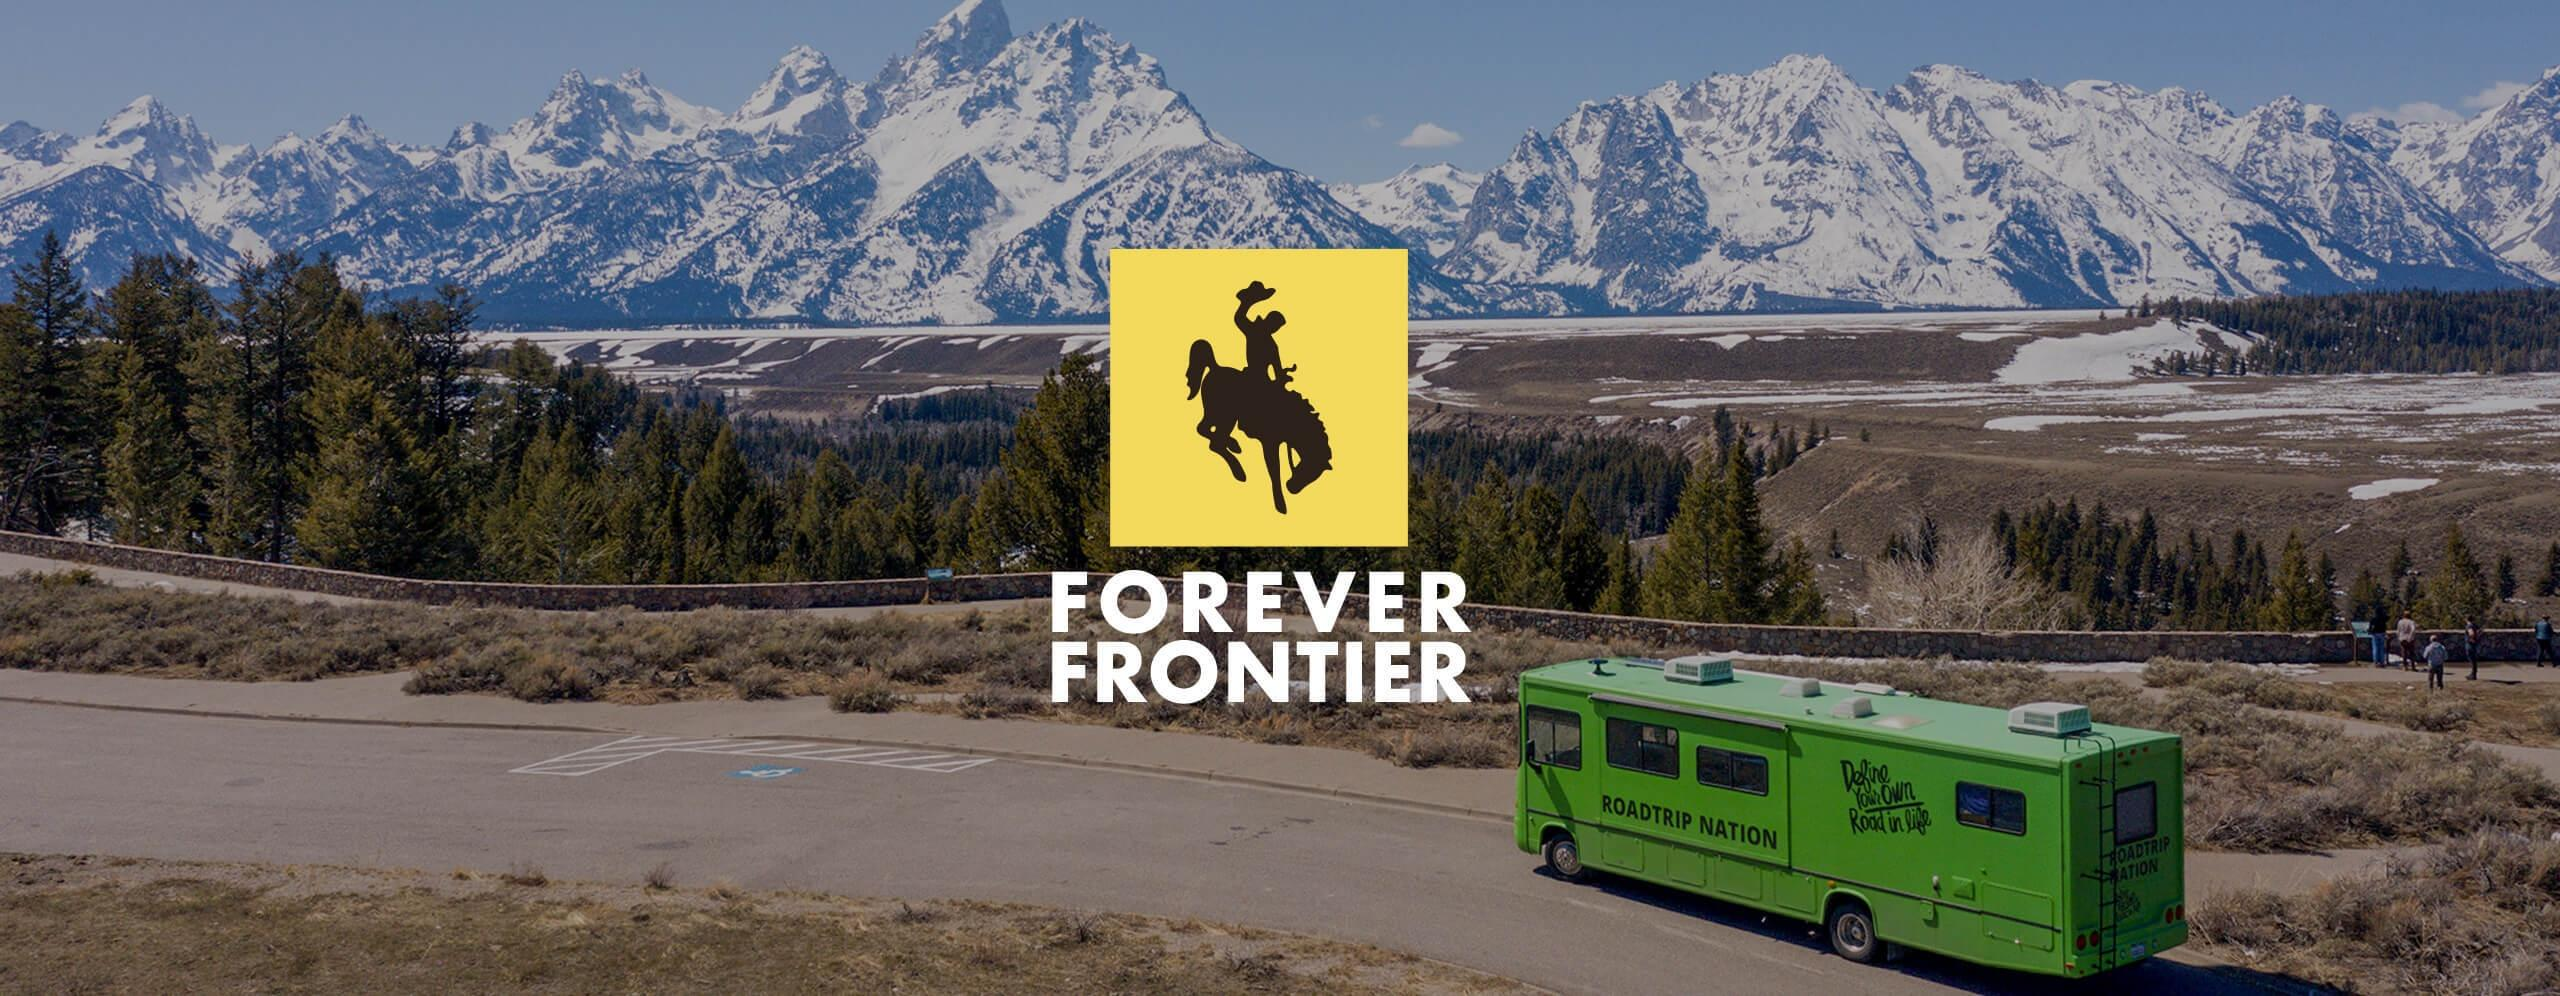 Forever Frontier